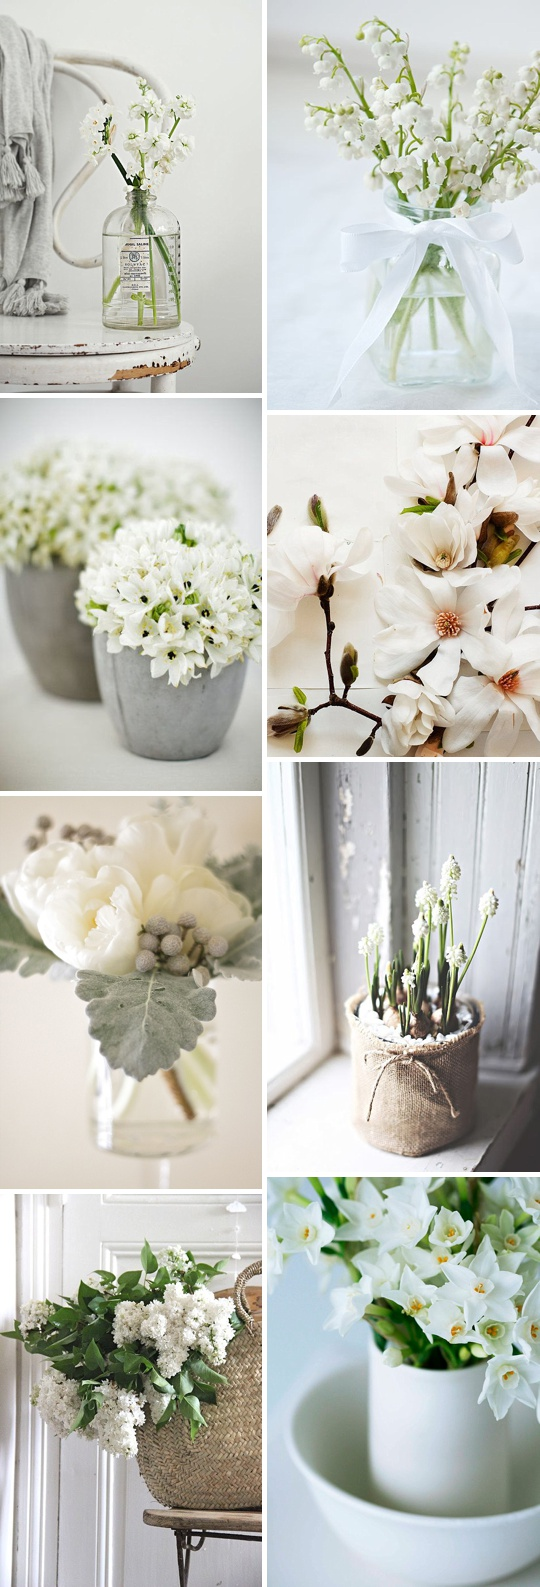 Floral Inspiration For Your Wedding Iscoyd Park Is A Romantic And